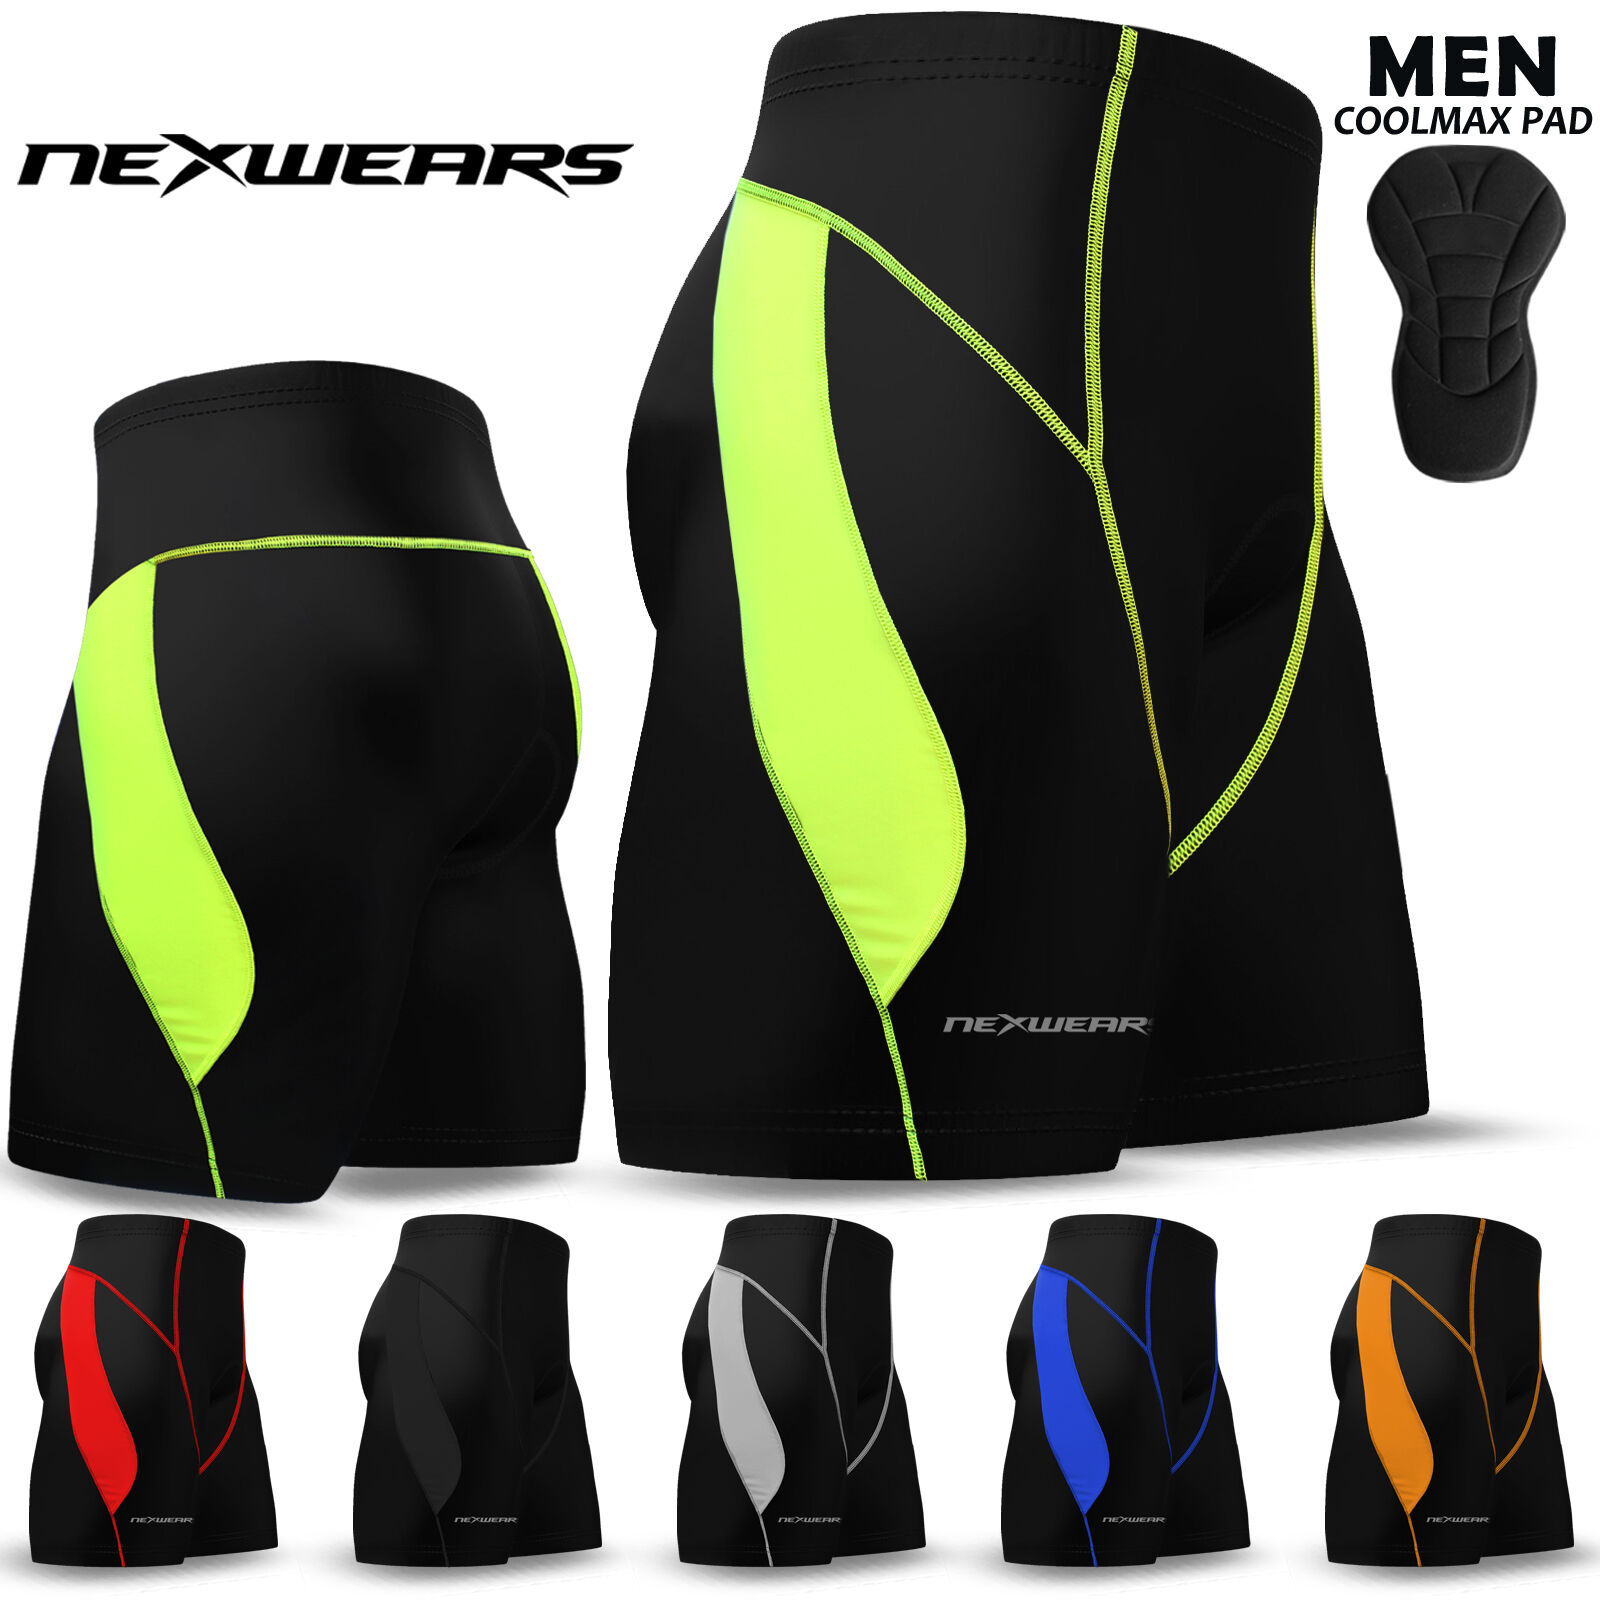 Mens Cycling Shorts Coolmax Compression Padded MTB Bicycle B